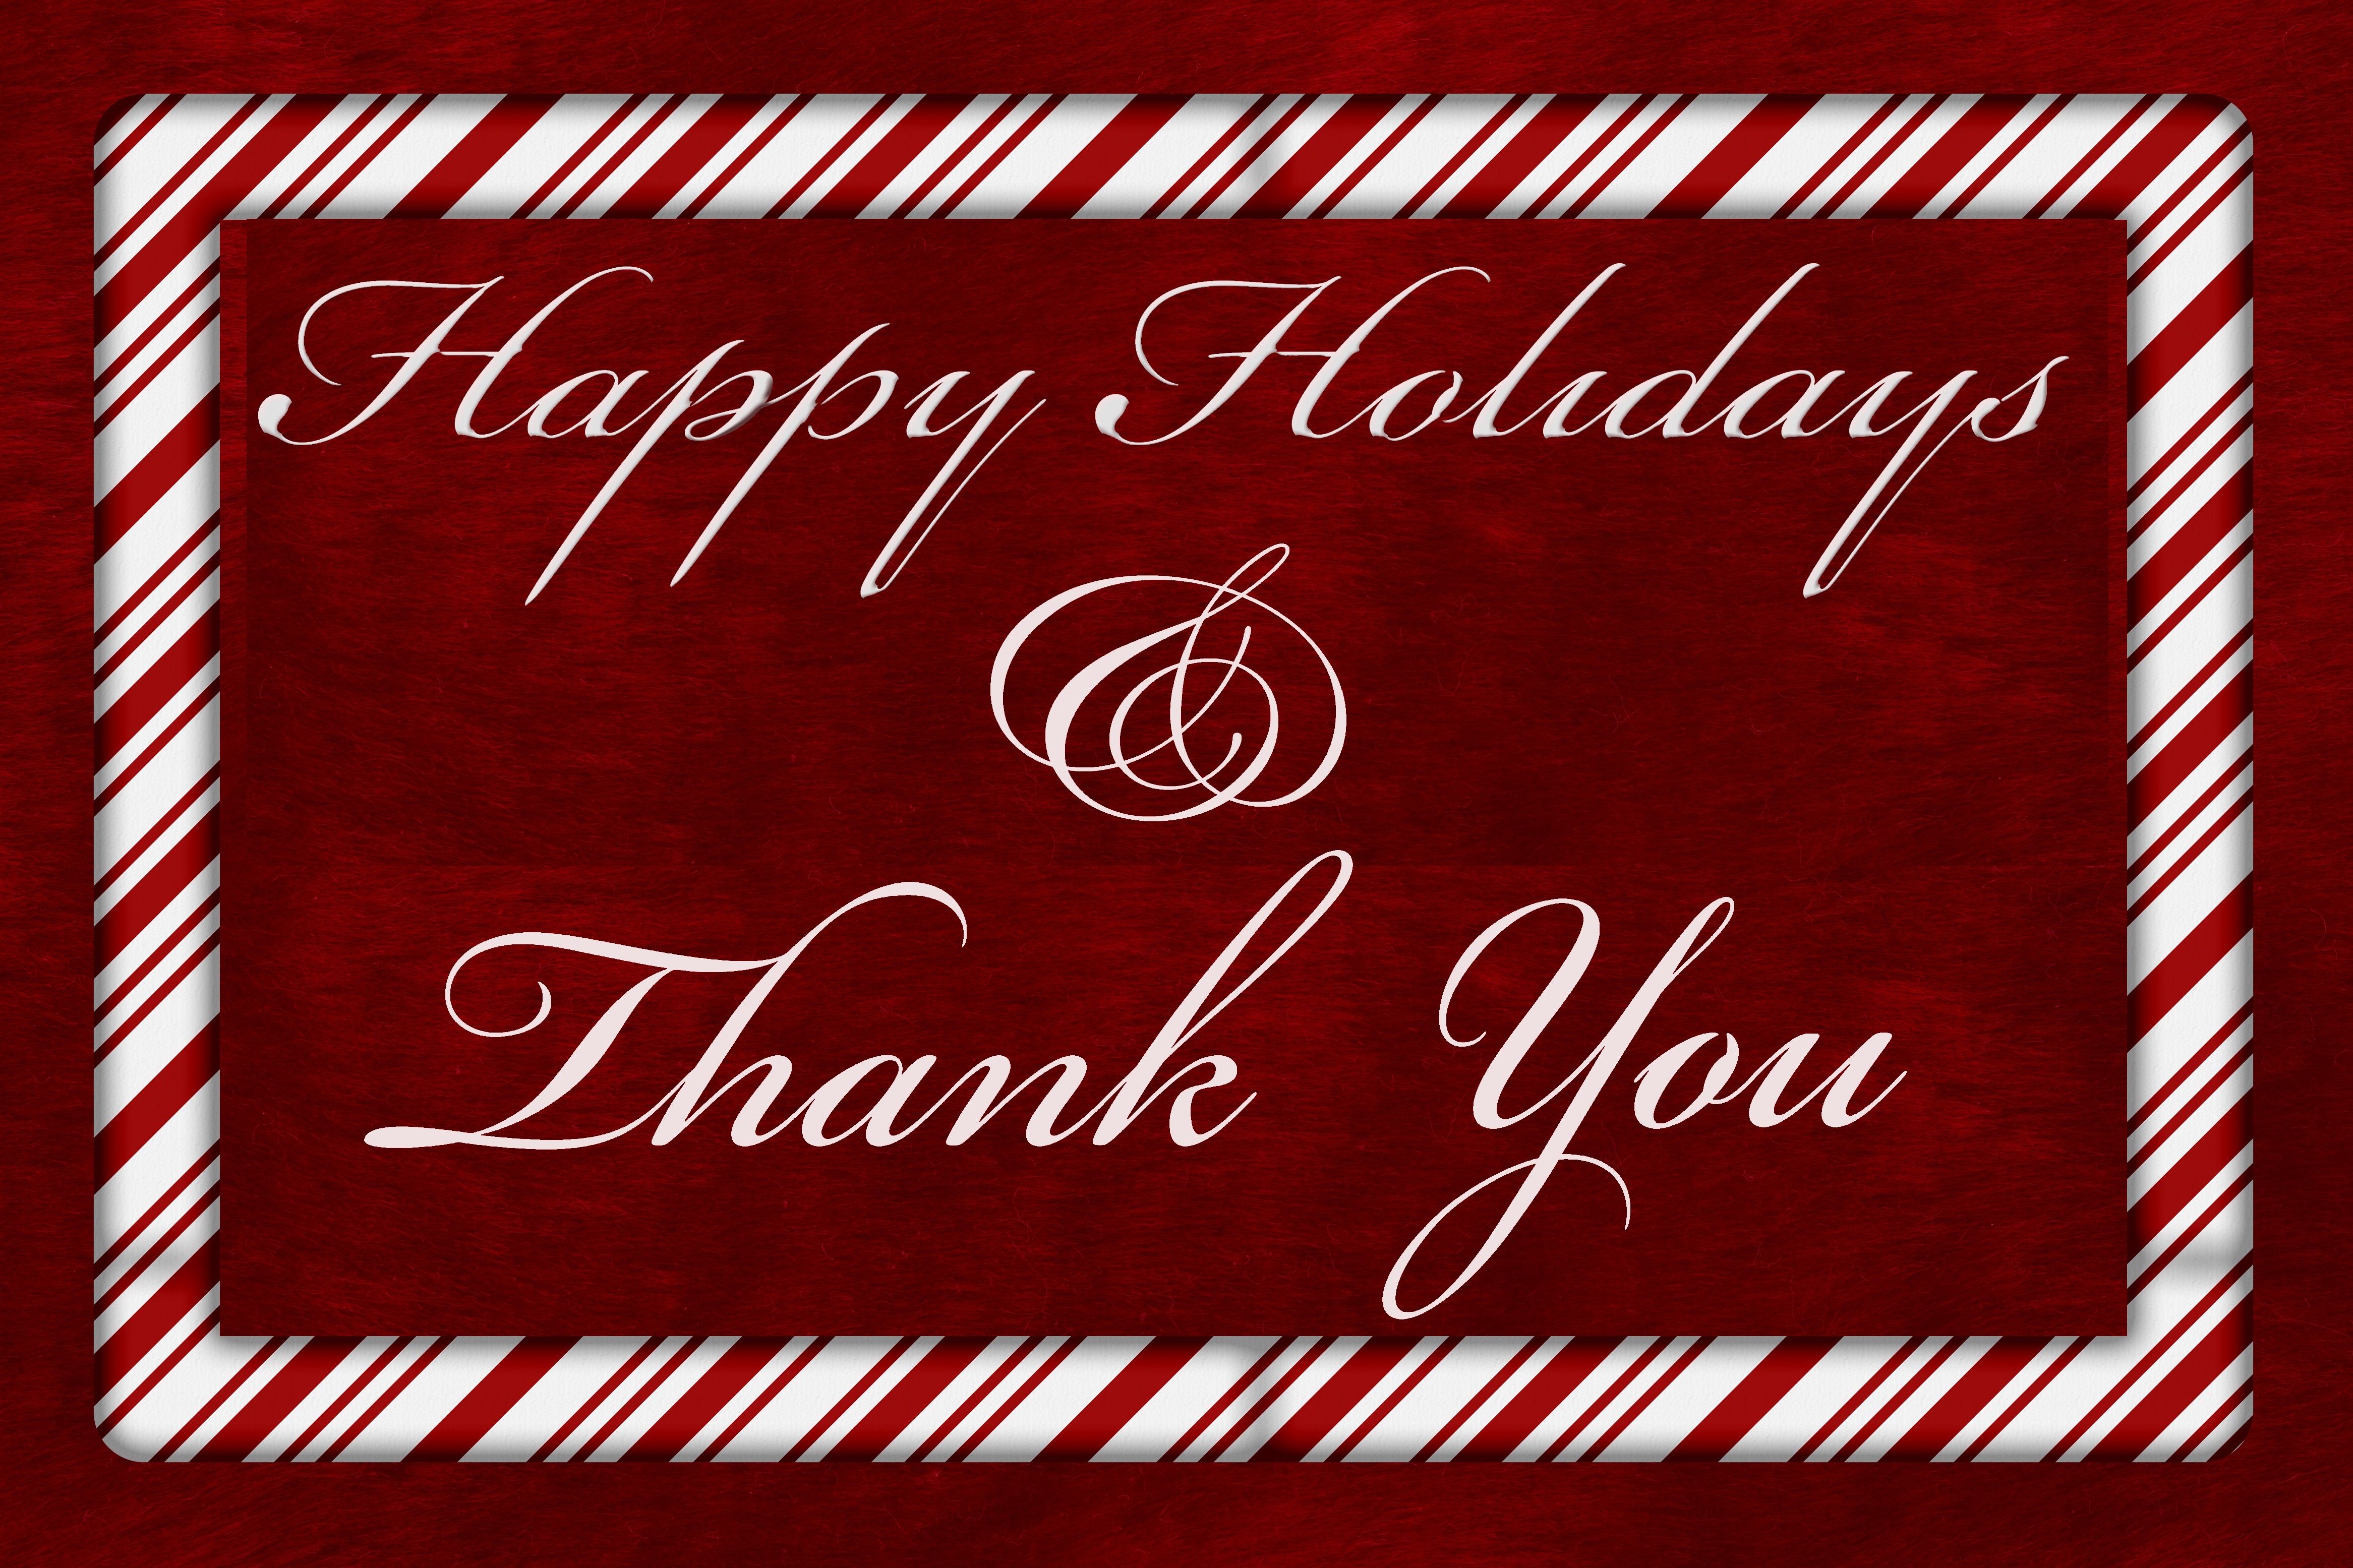 Happy Holidays And Thanks To All >> Happy Holidays Thank You Everyone Crowdfundinglegalhub Com